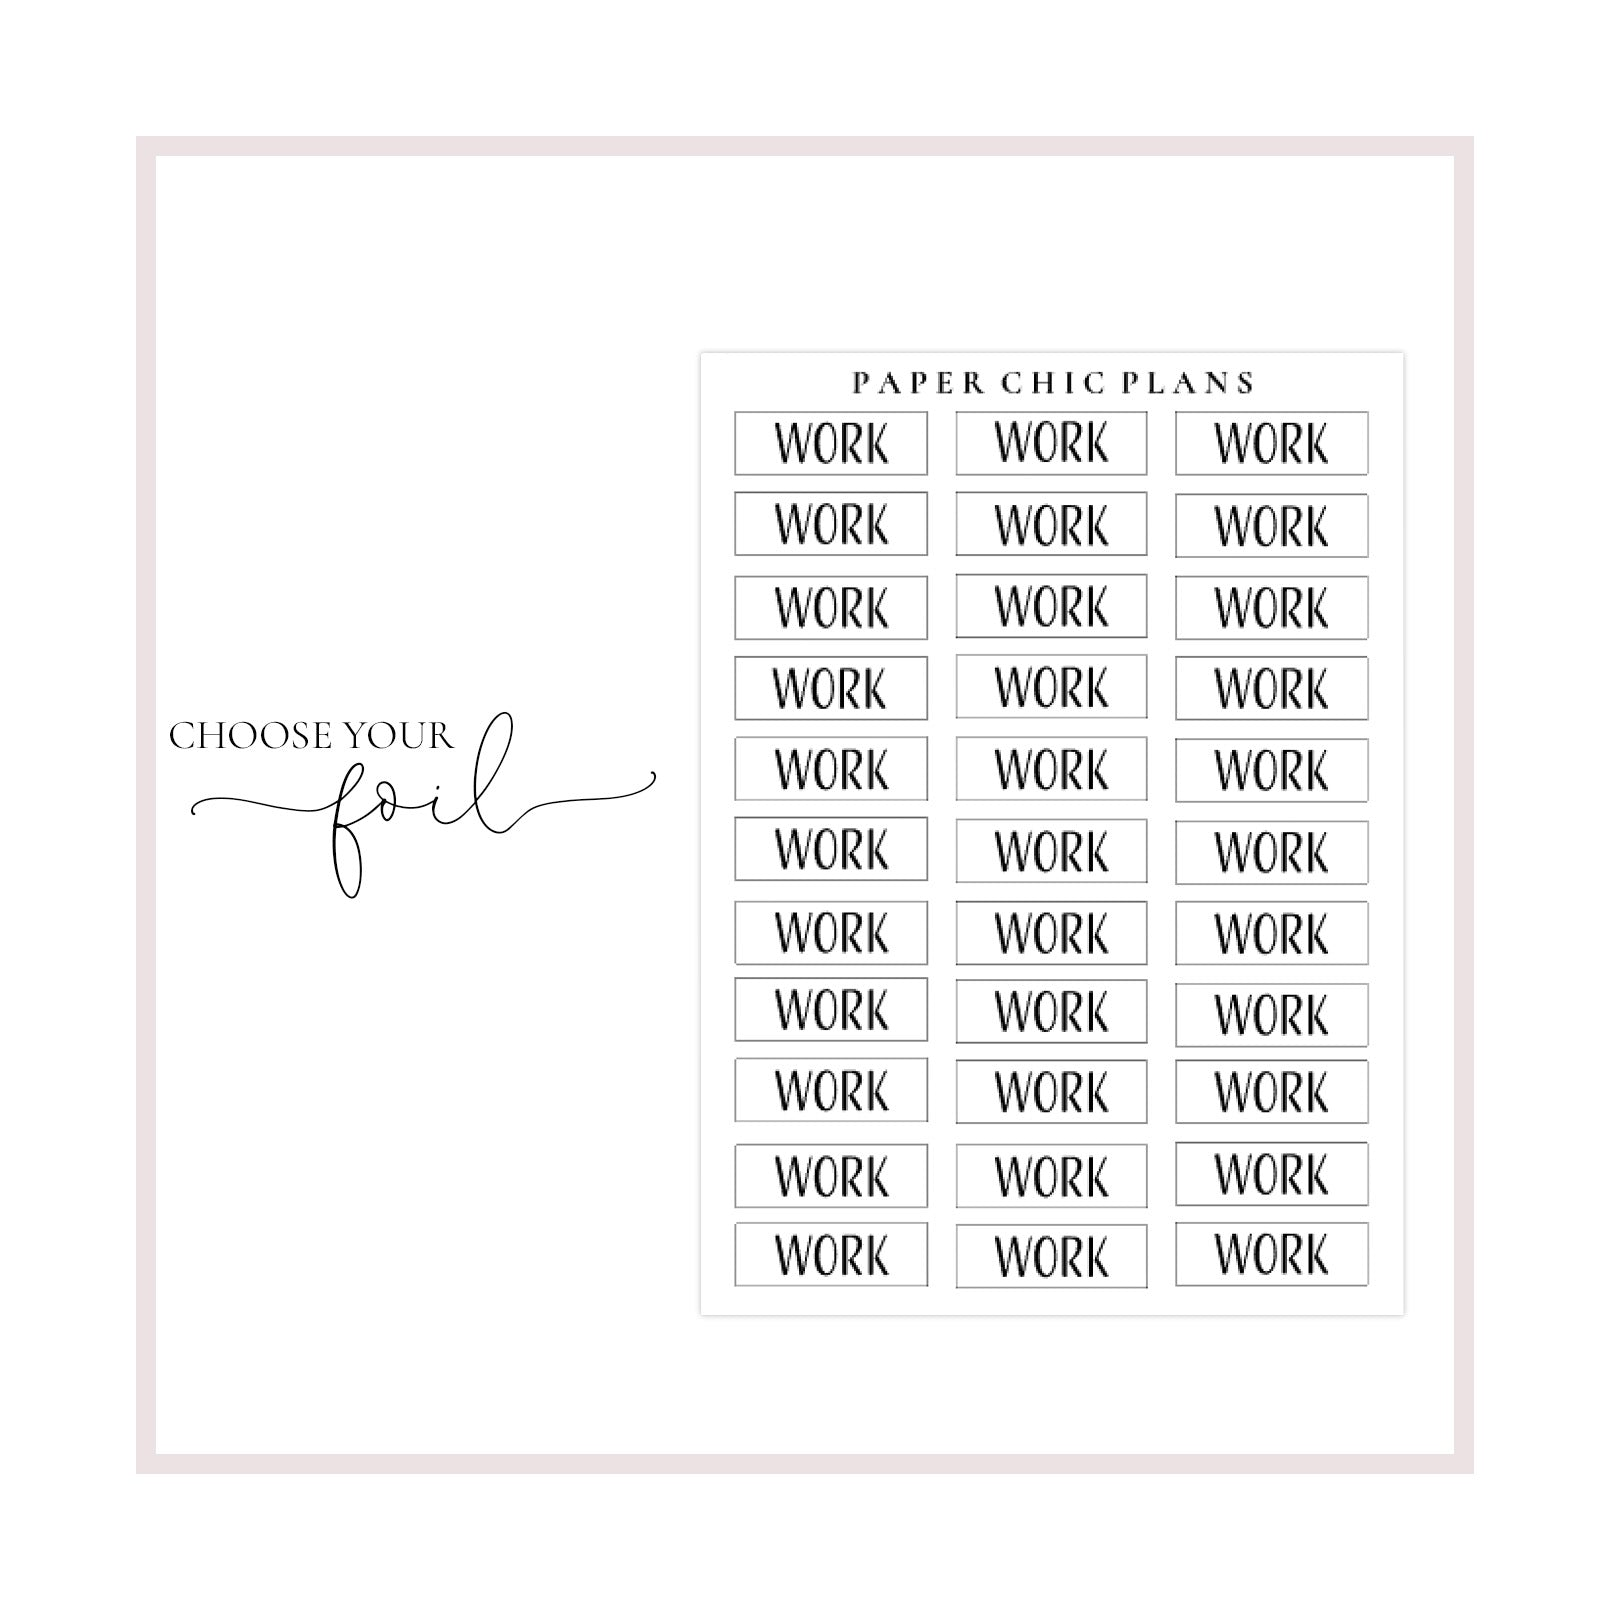 Work // Foiled Scripts - Paper Chic Plans